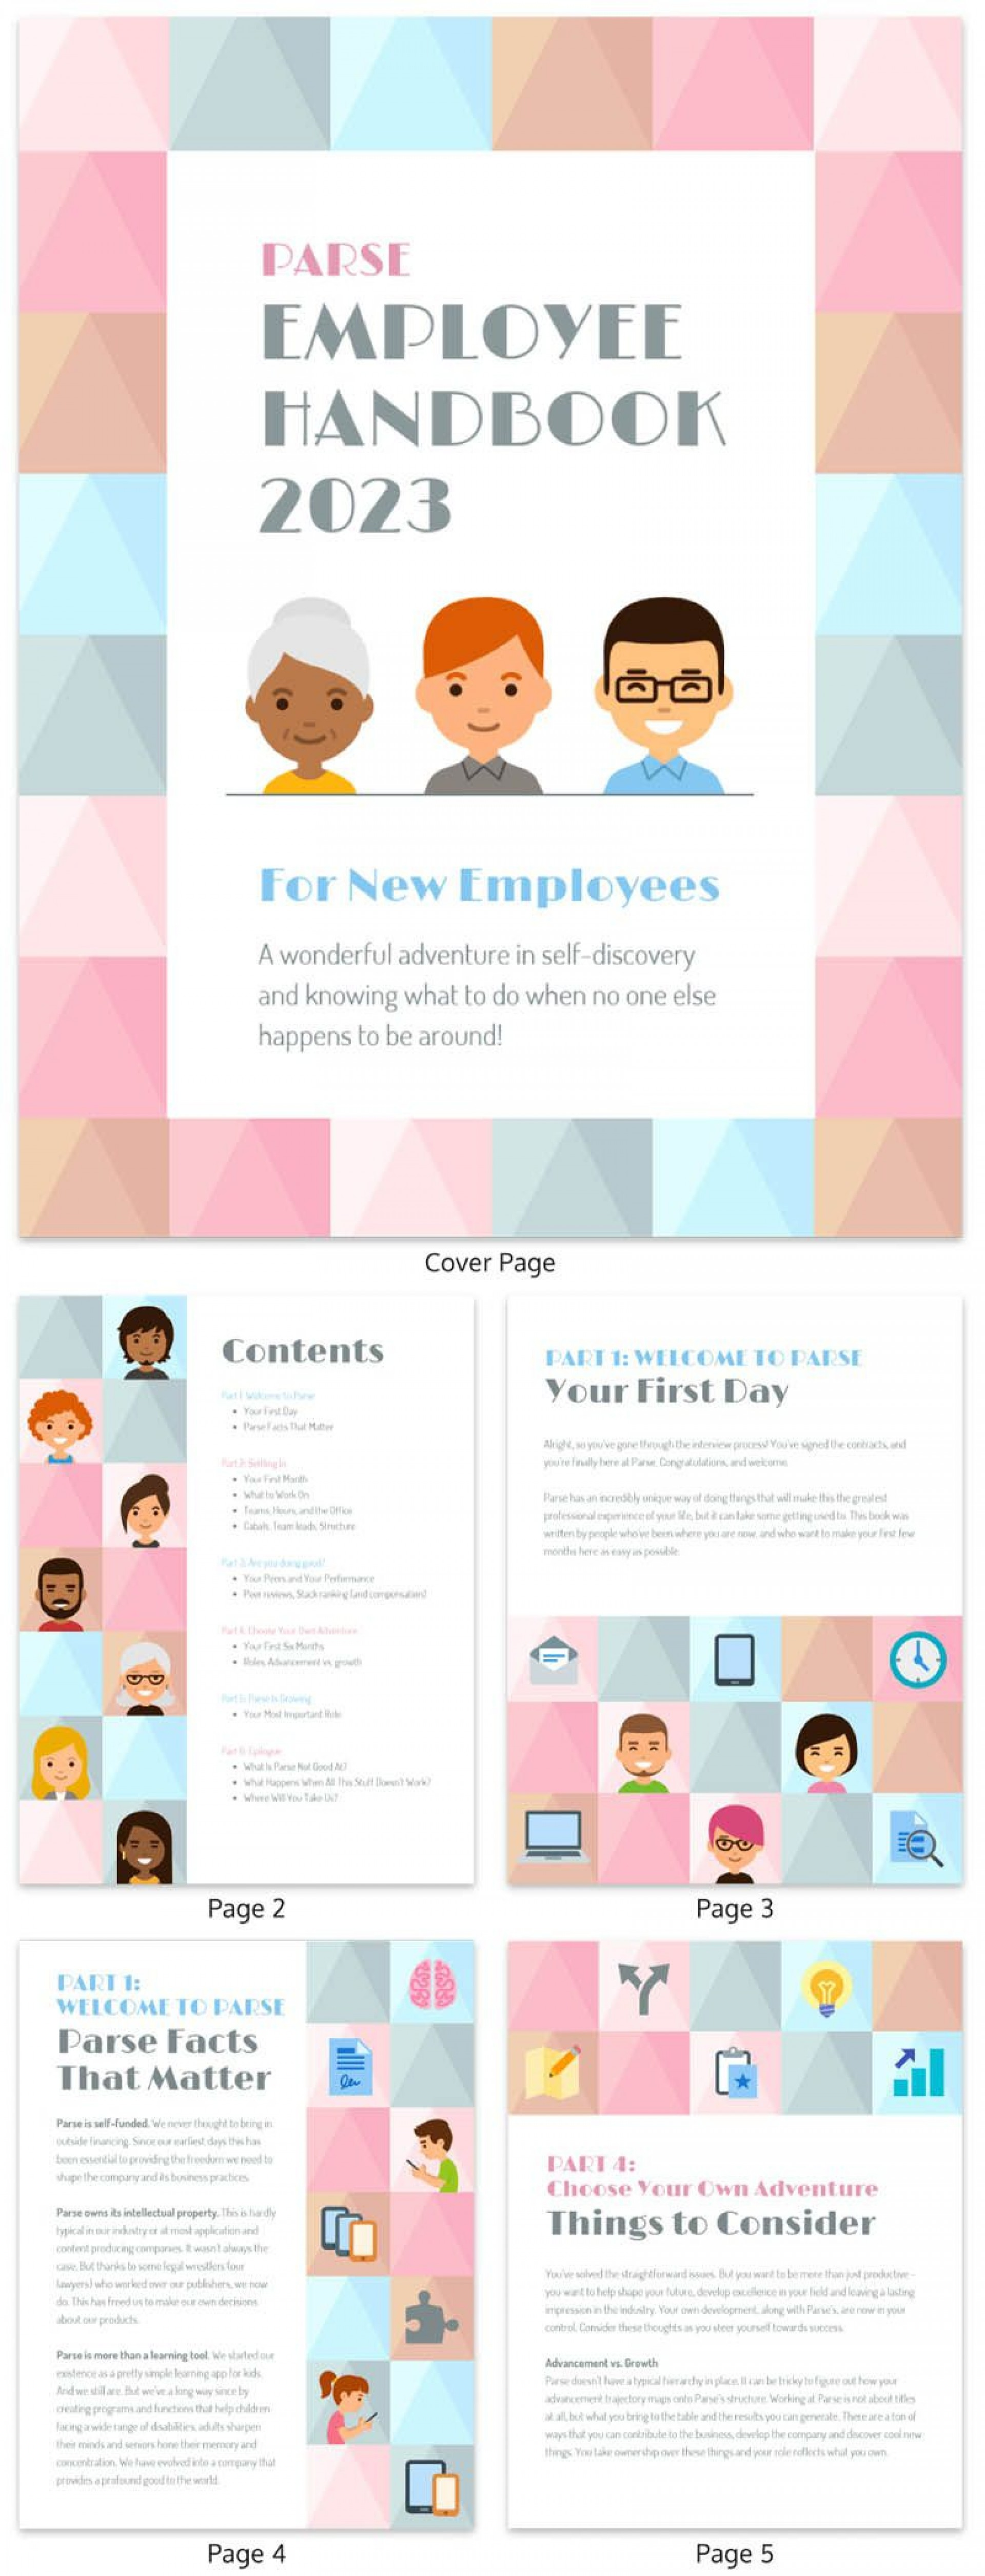 009 Unique Employee Handbook Template Free Example  Restaurant Download Induction Manual Sample In Singapore1920